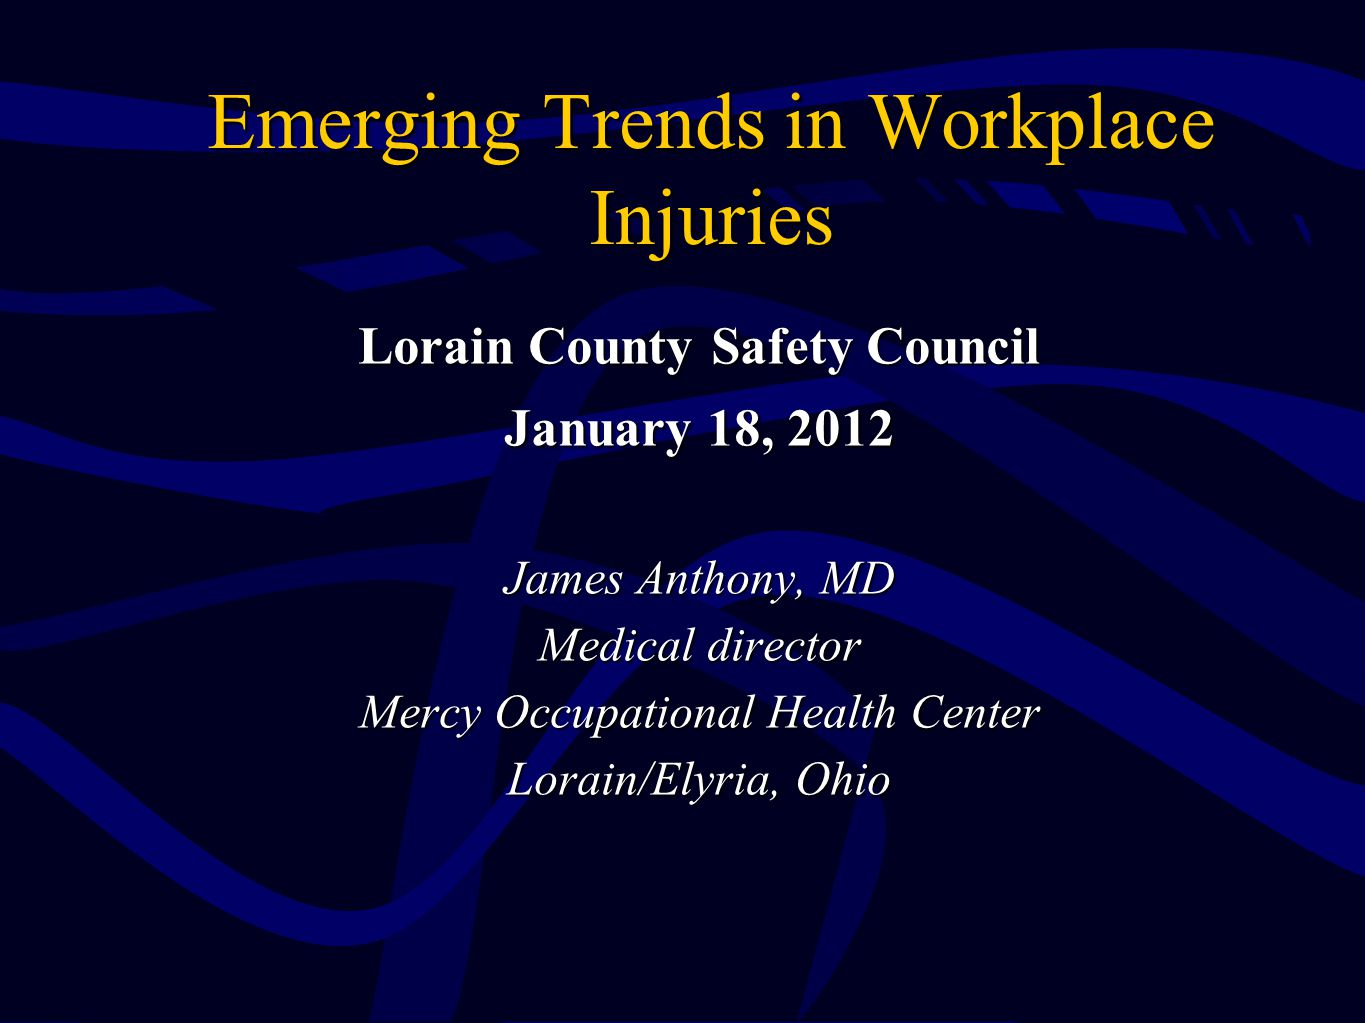 Emerging Trends in Workplace Injuries Lorain County Safety Council January 18, 2012 James Anthony, MD Medical director Mercy Occupational Health Center Lorain/Elyria, Ohio